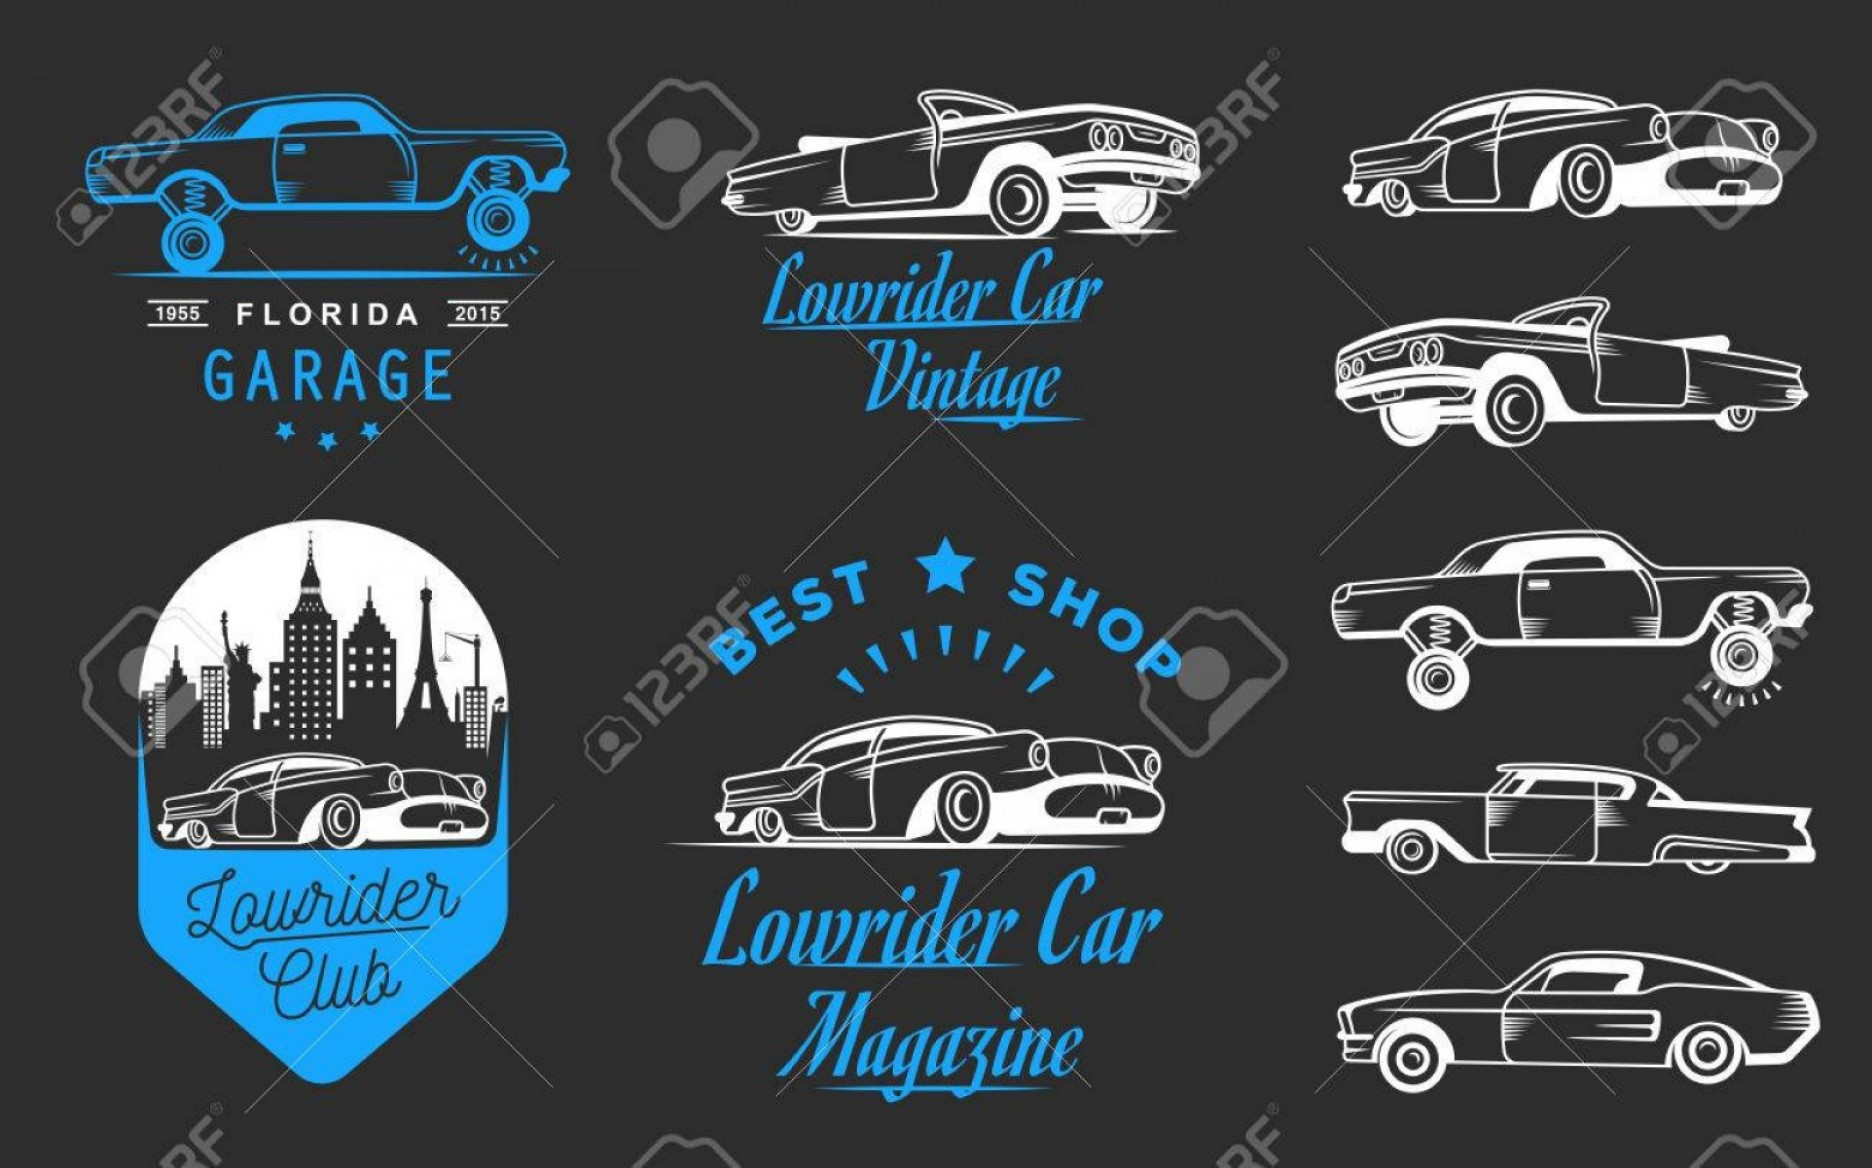 Old Impala Logo Vector: Photostock Vector Collection Blue And White Classic And Retro Old Car Icon